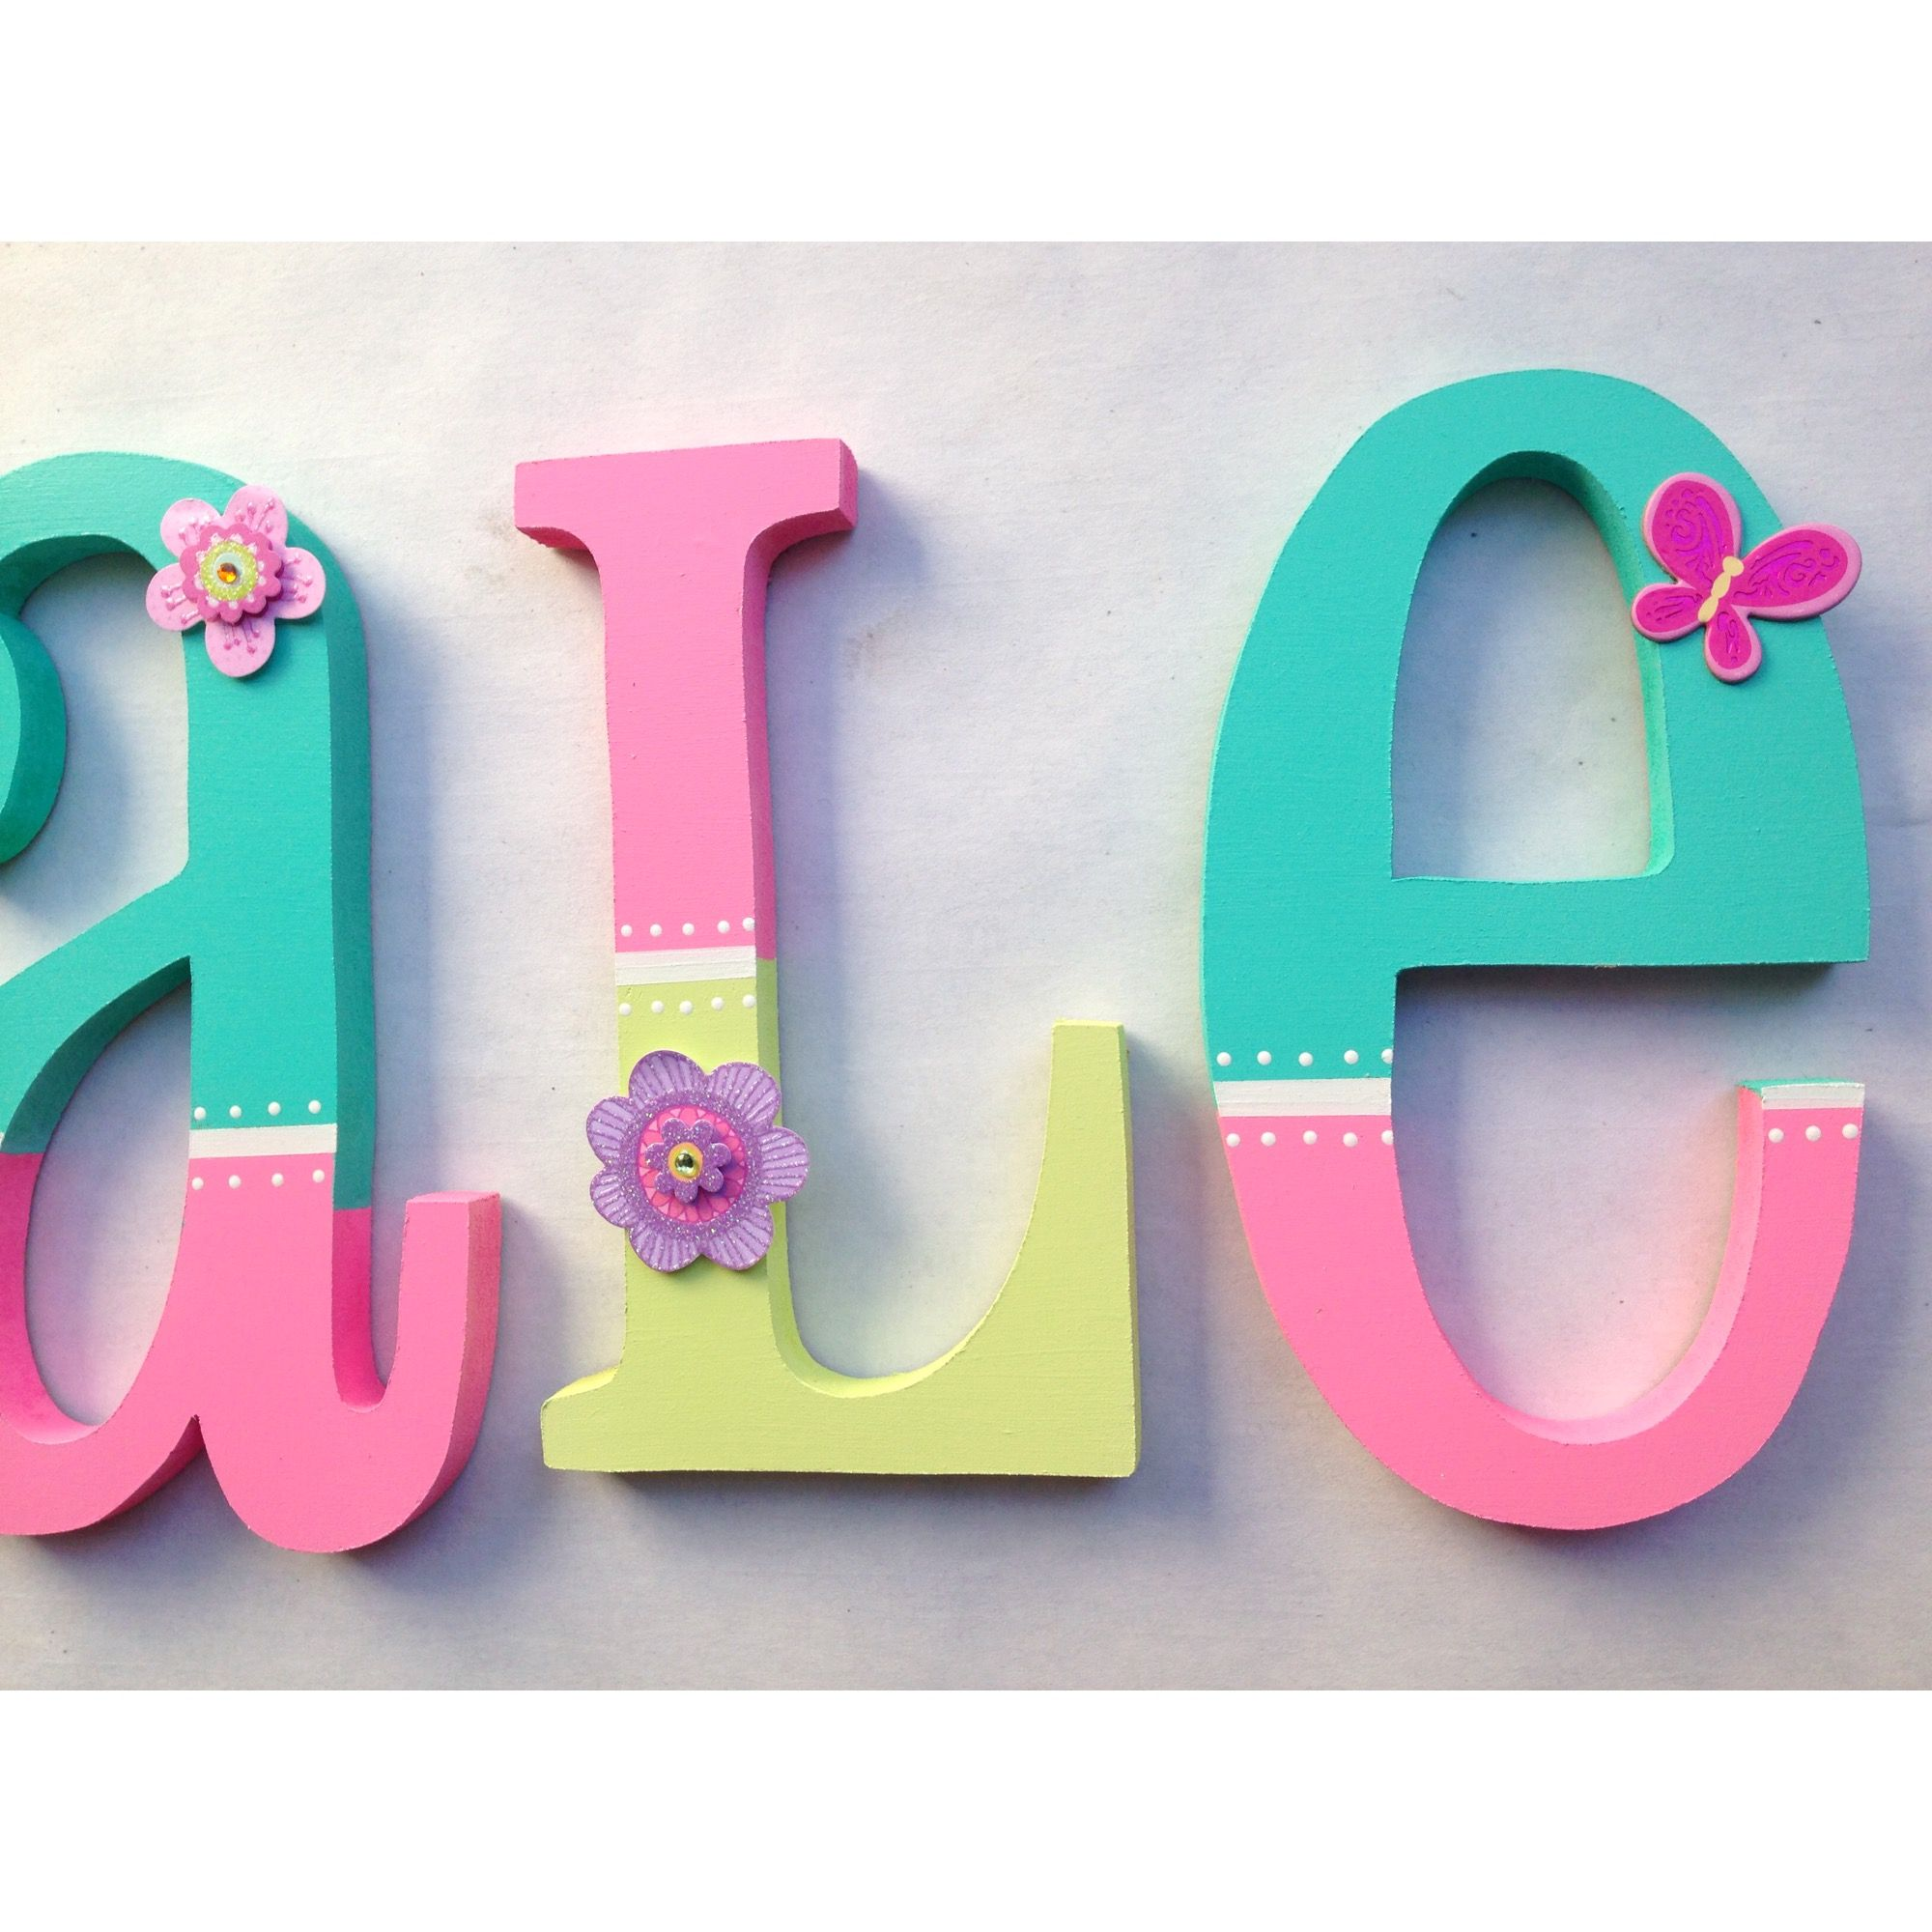 Nursery decor letters letras de madera para decorar on - Letras de decoracion ...